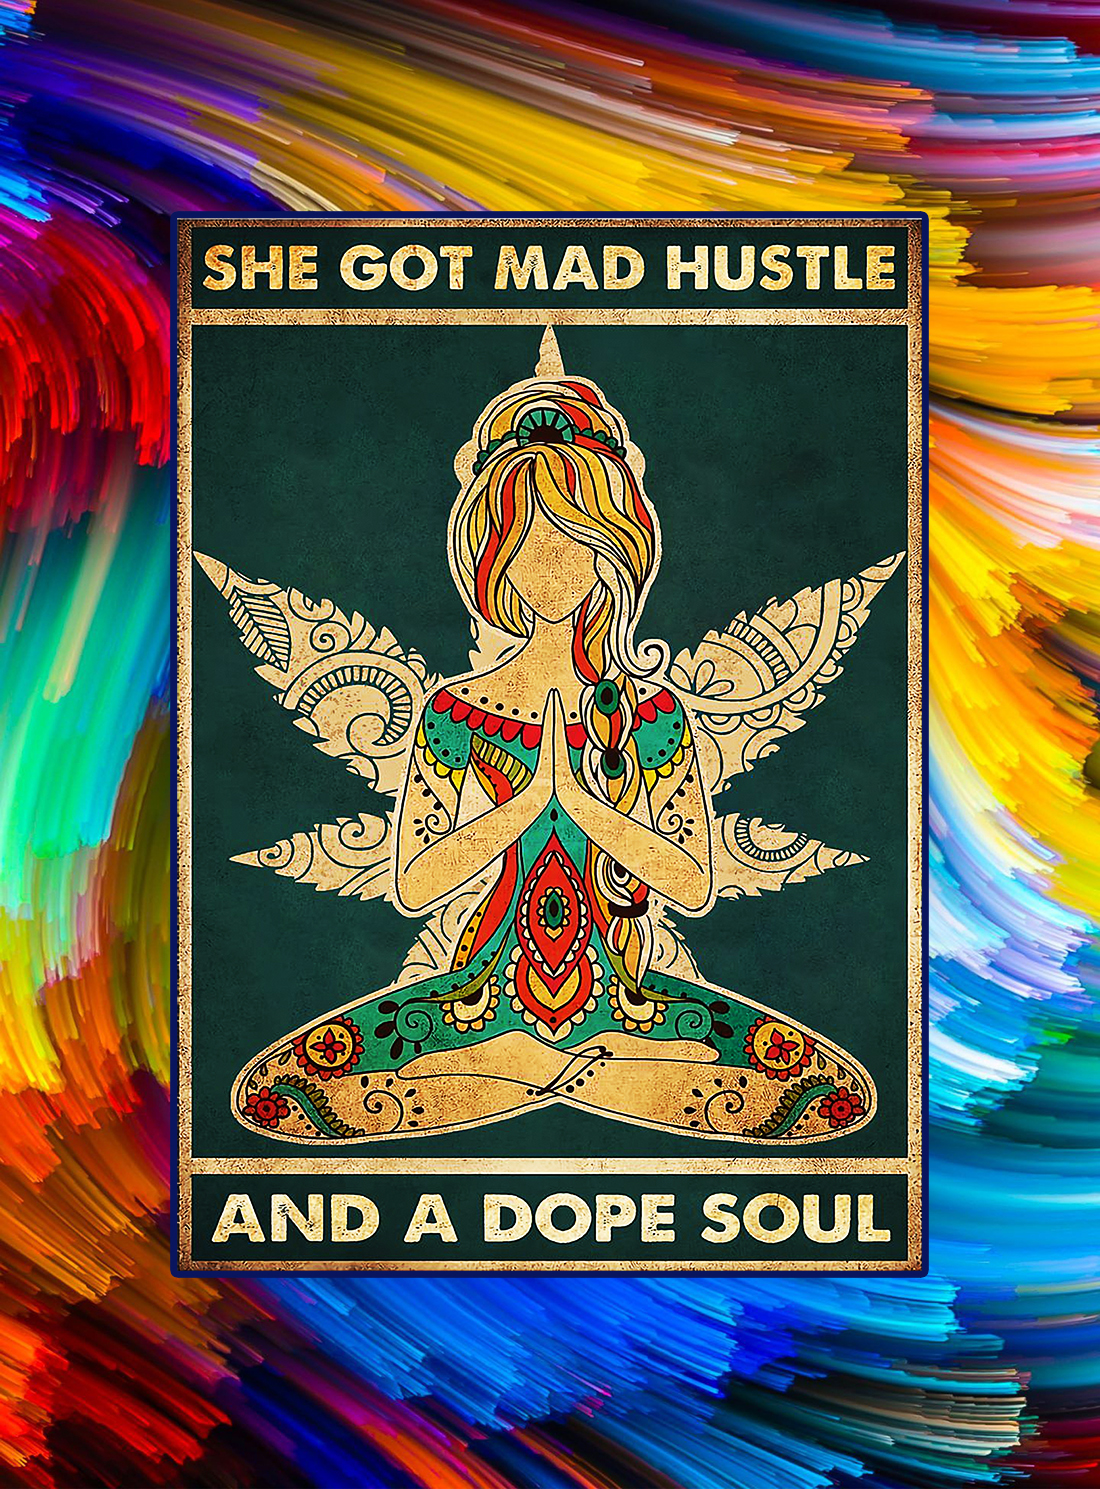 She got mad hustle and a dope soul poster - A4